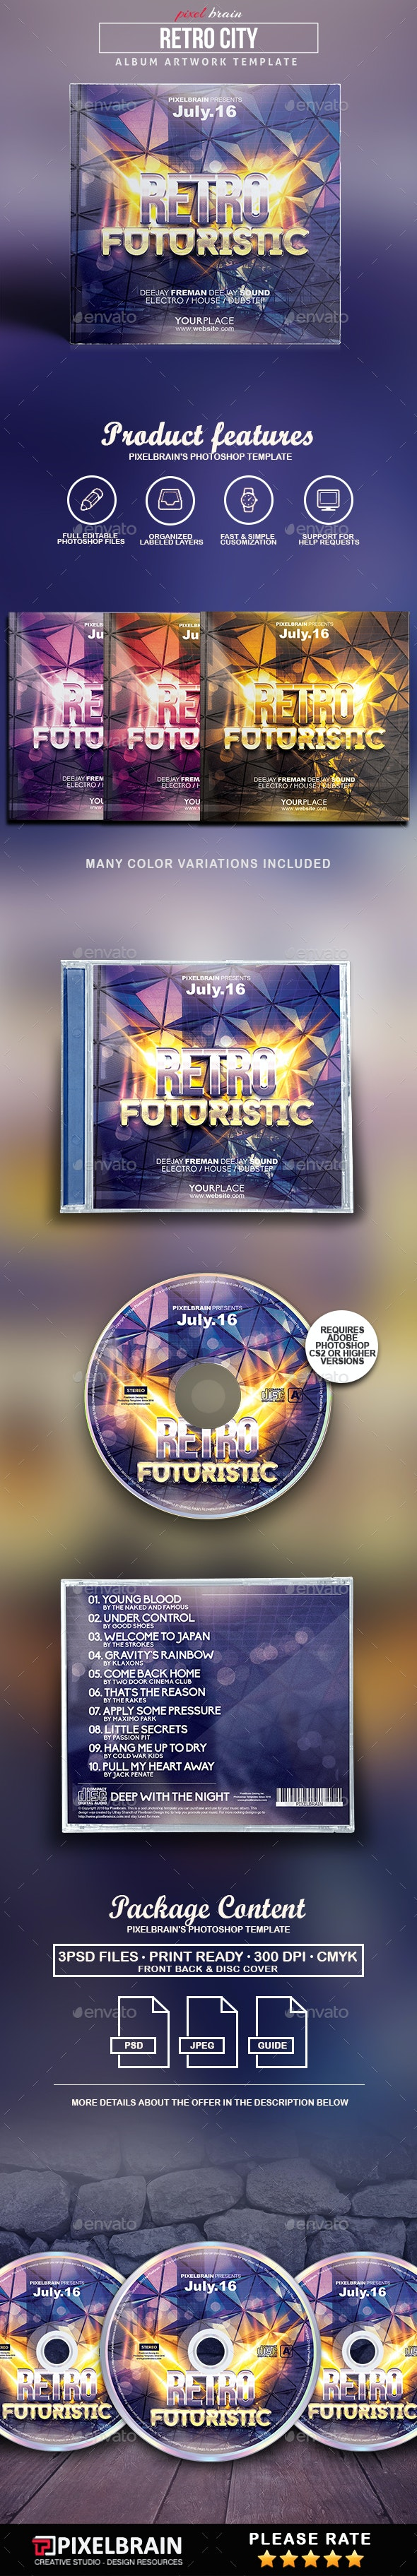 Retro City CD Cover Artwork - CD & DVD Artwork Print Templates